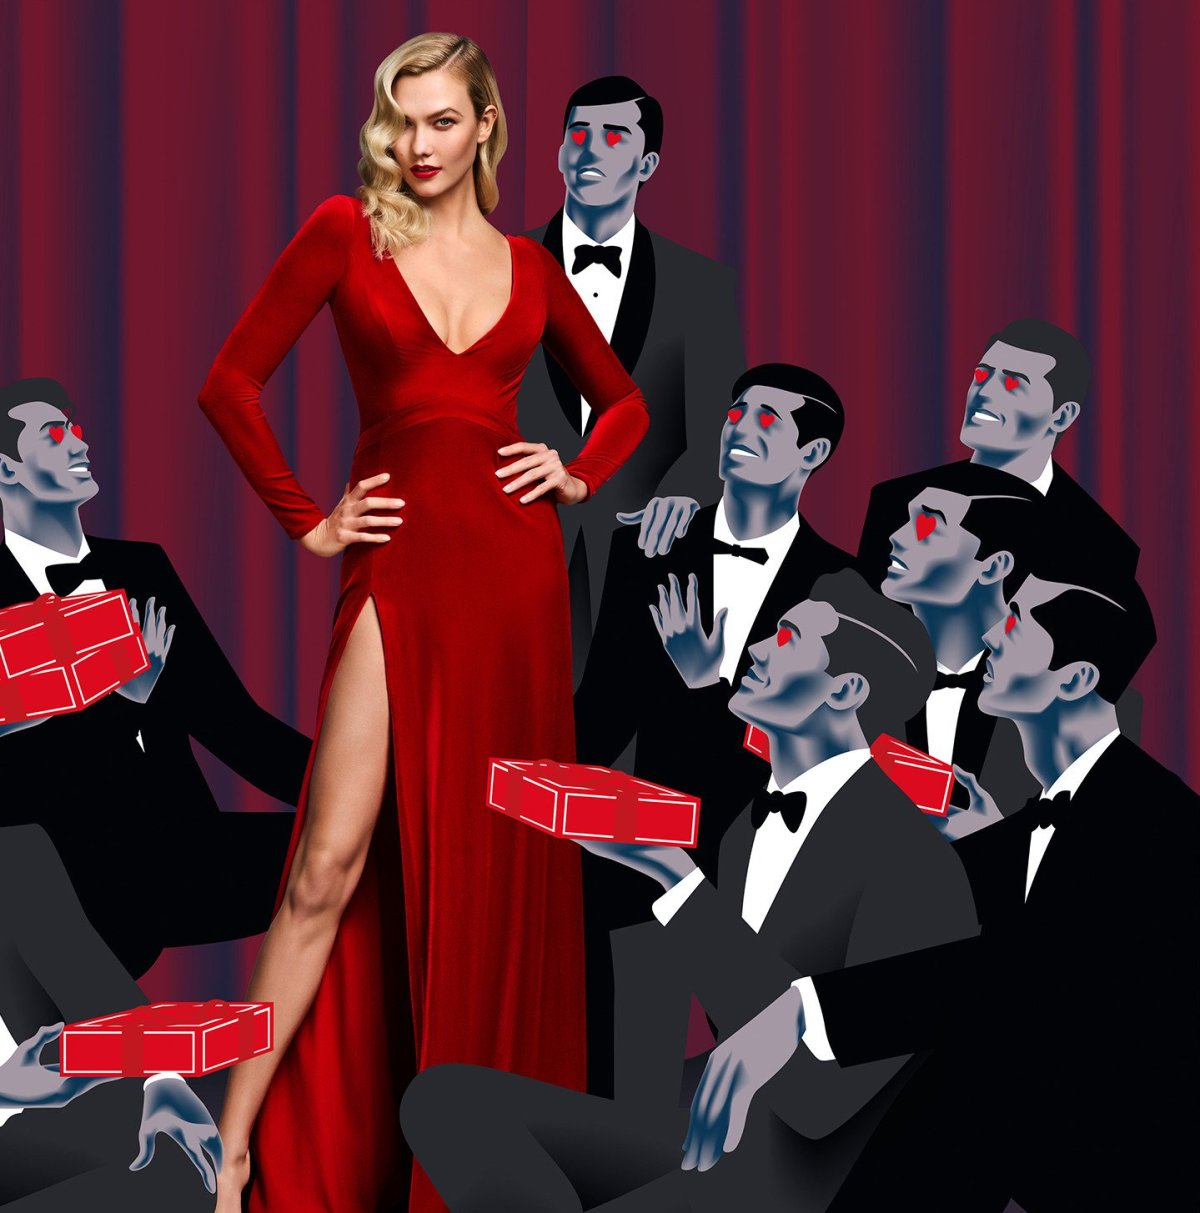 Karlie Kloss by Serge Leblon for Carolina Herrera